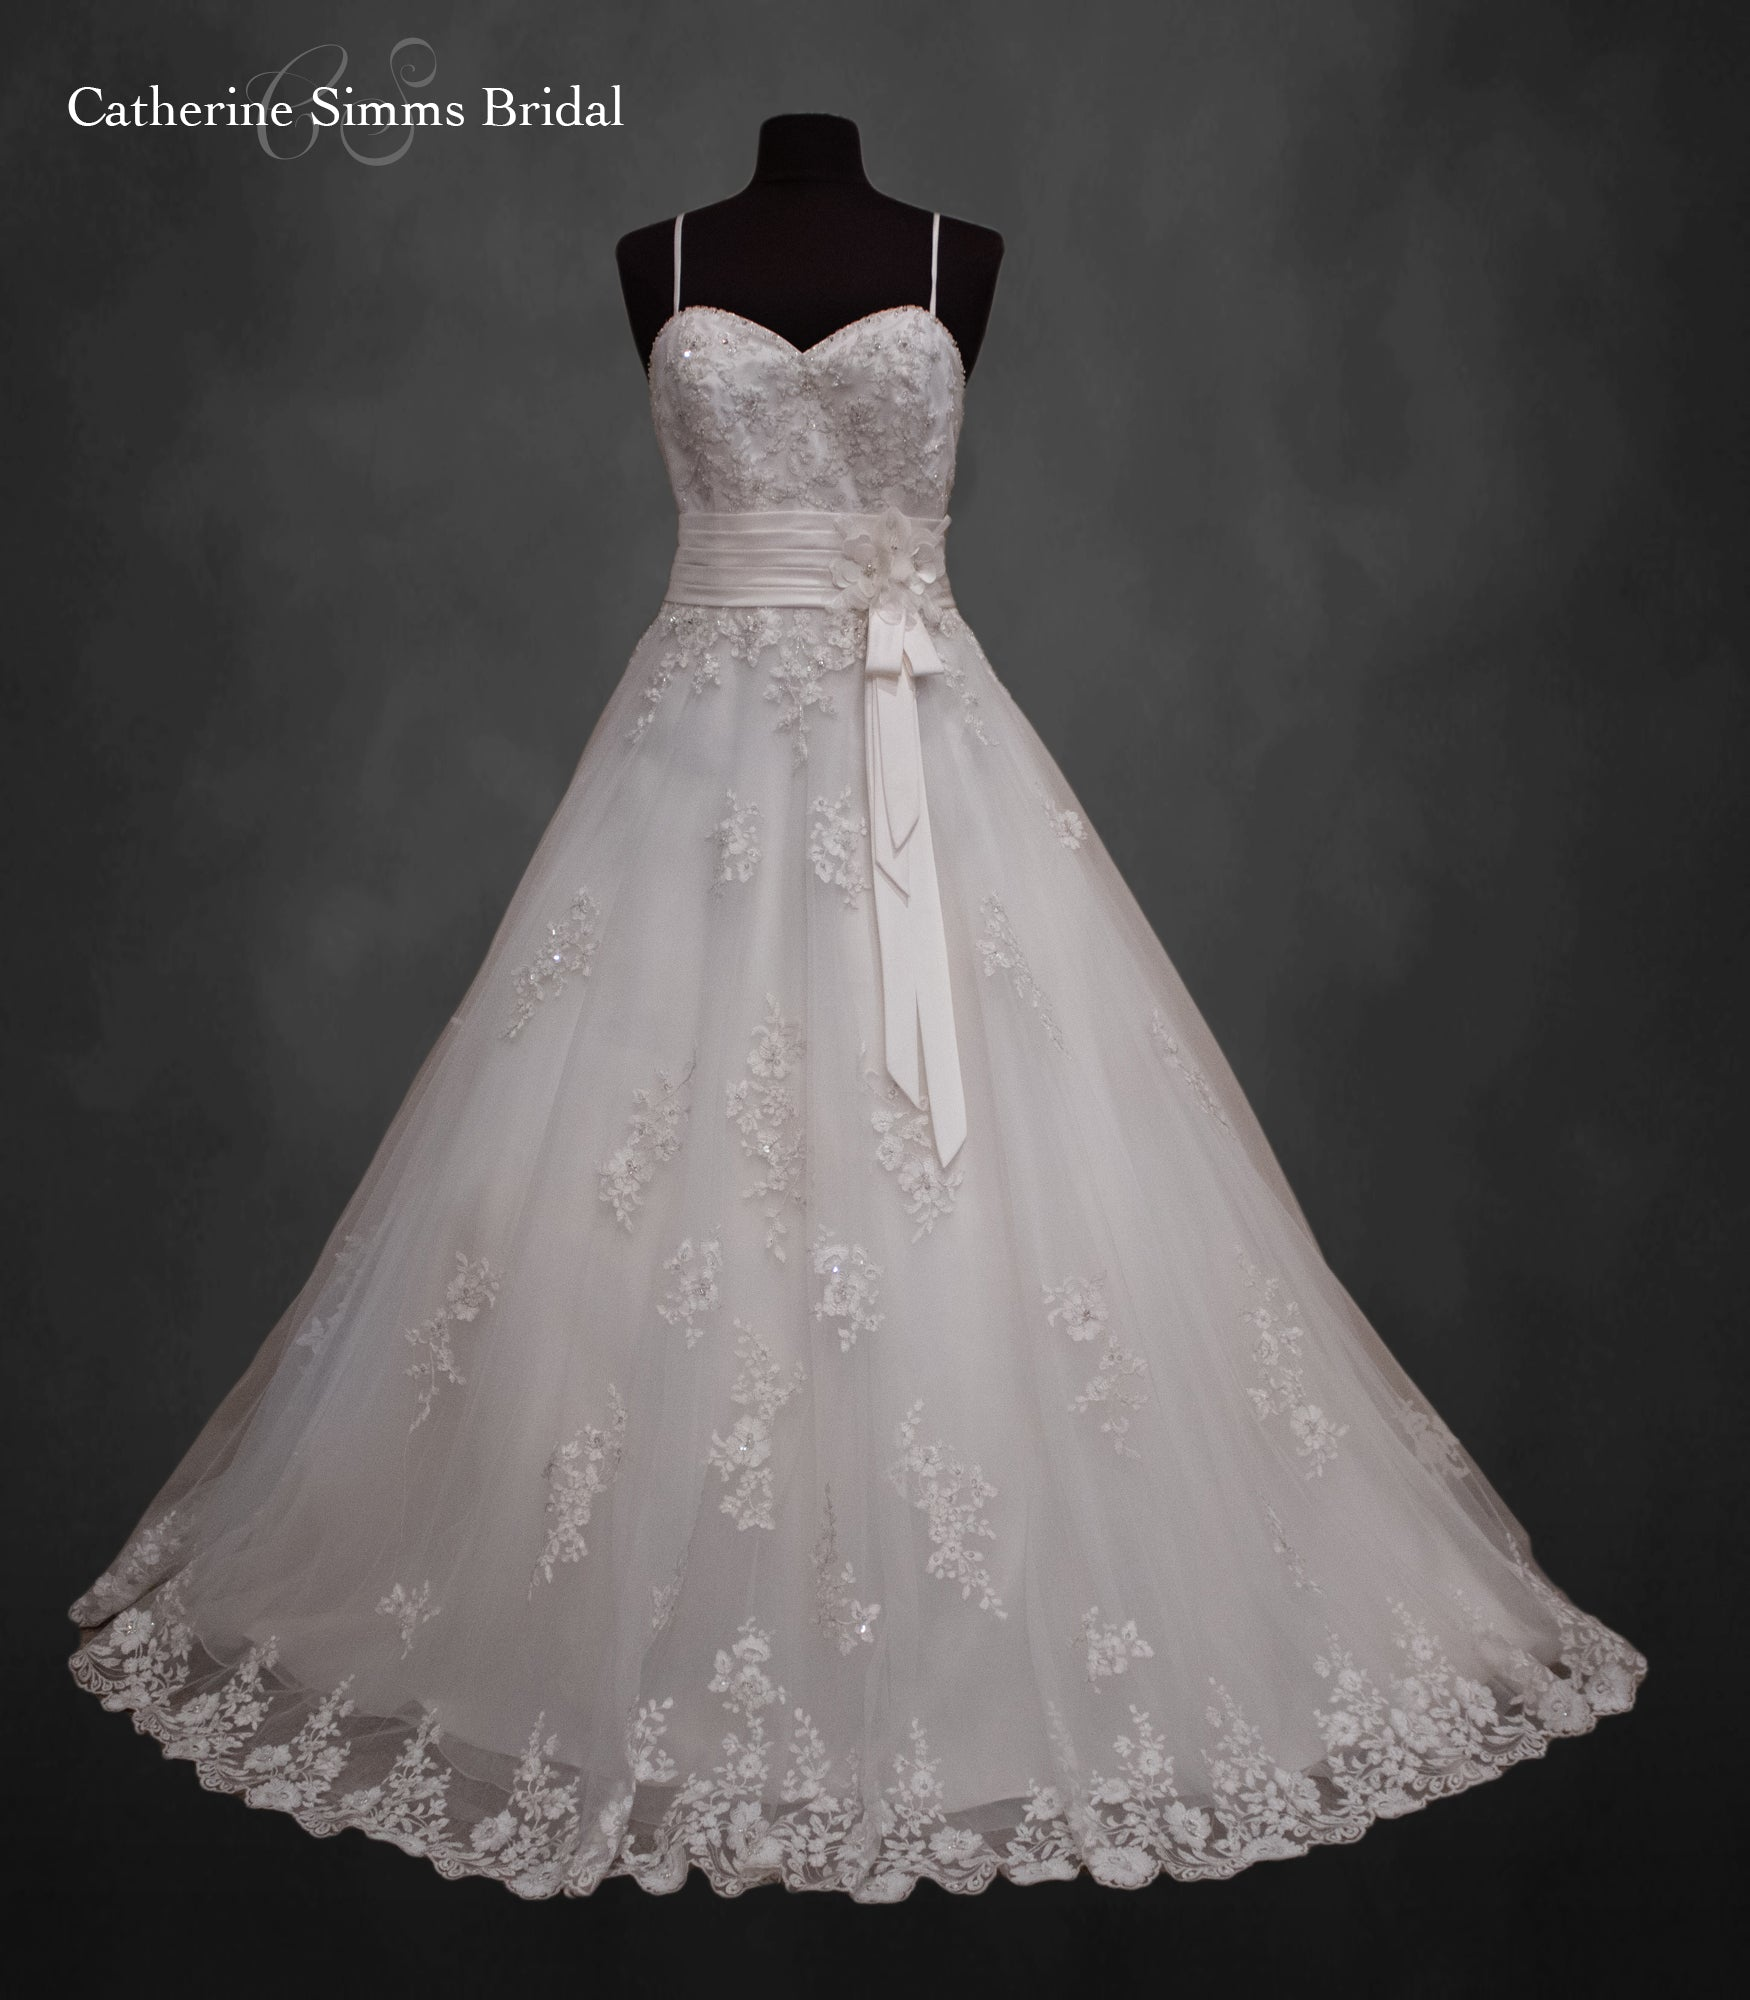 Lace Empire waist Ballgown